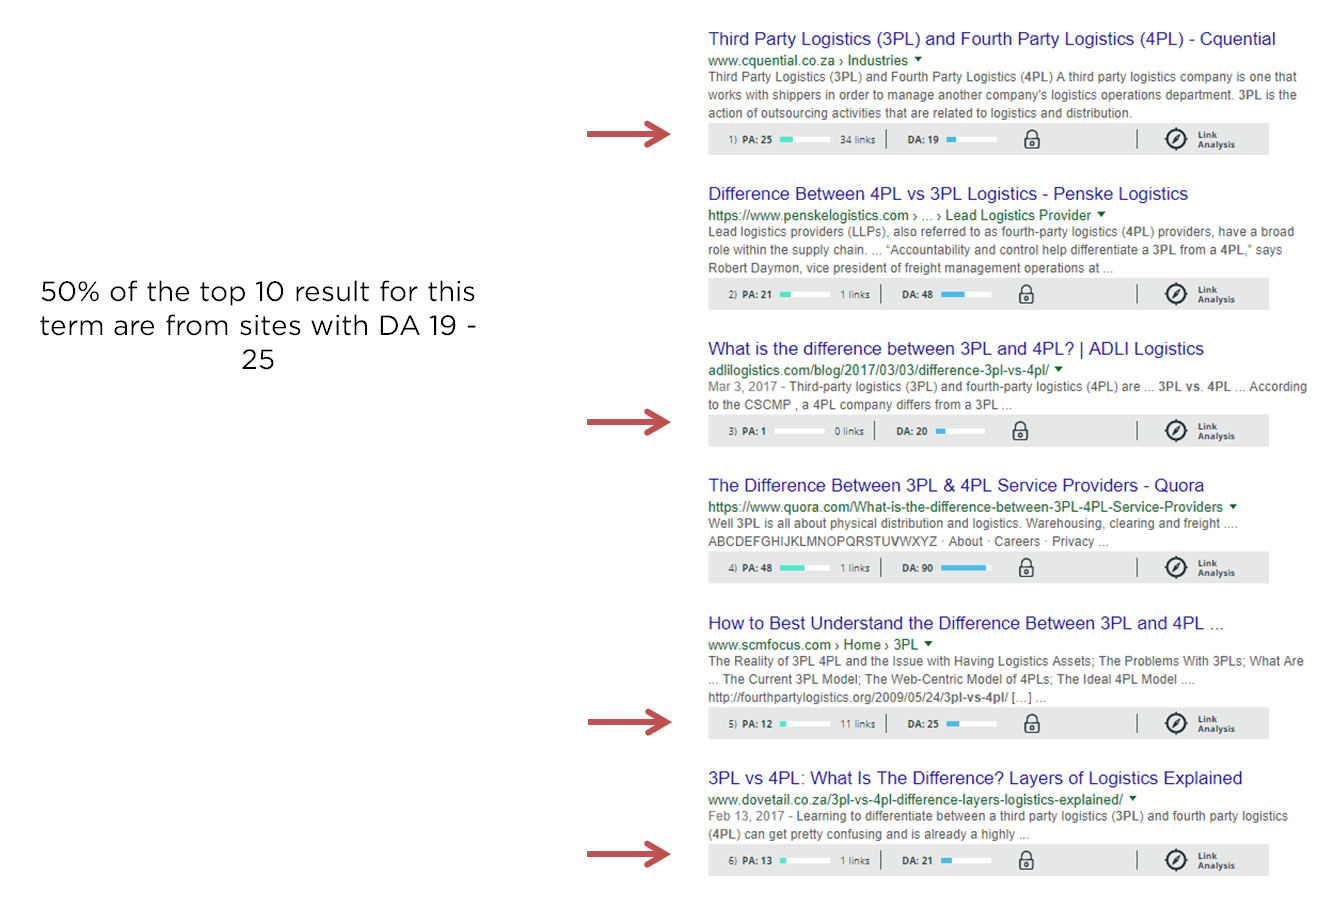 6 Advanced SEO Strategies & Techniques for 2018 [with Case Studies]